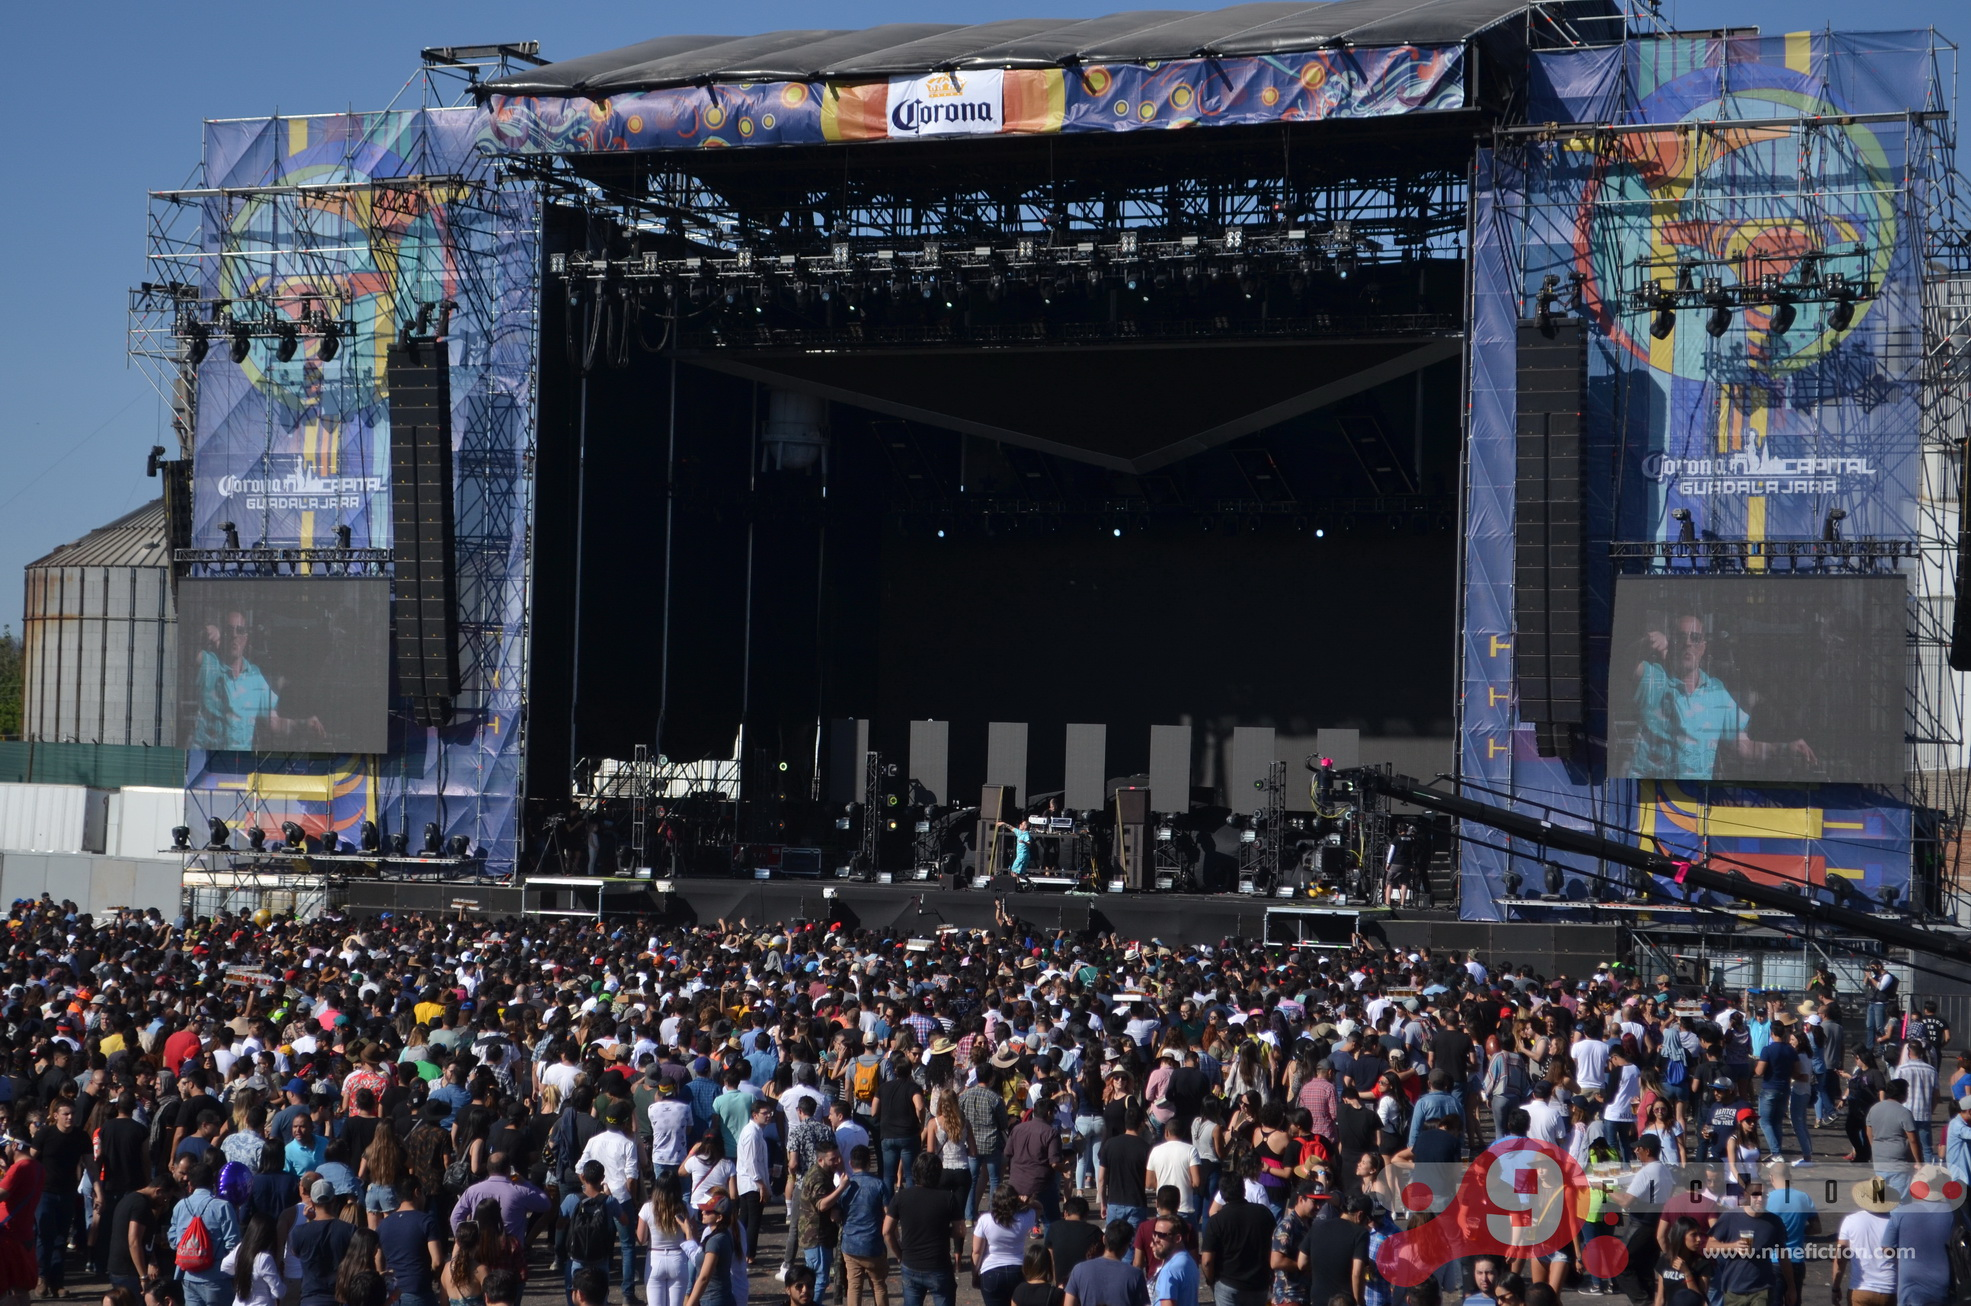 159 Corona Capital Gdl 2018 - Foto Salvador Tabares - Nine Fiction